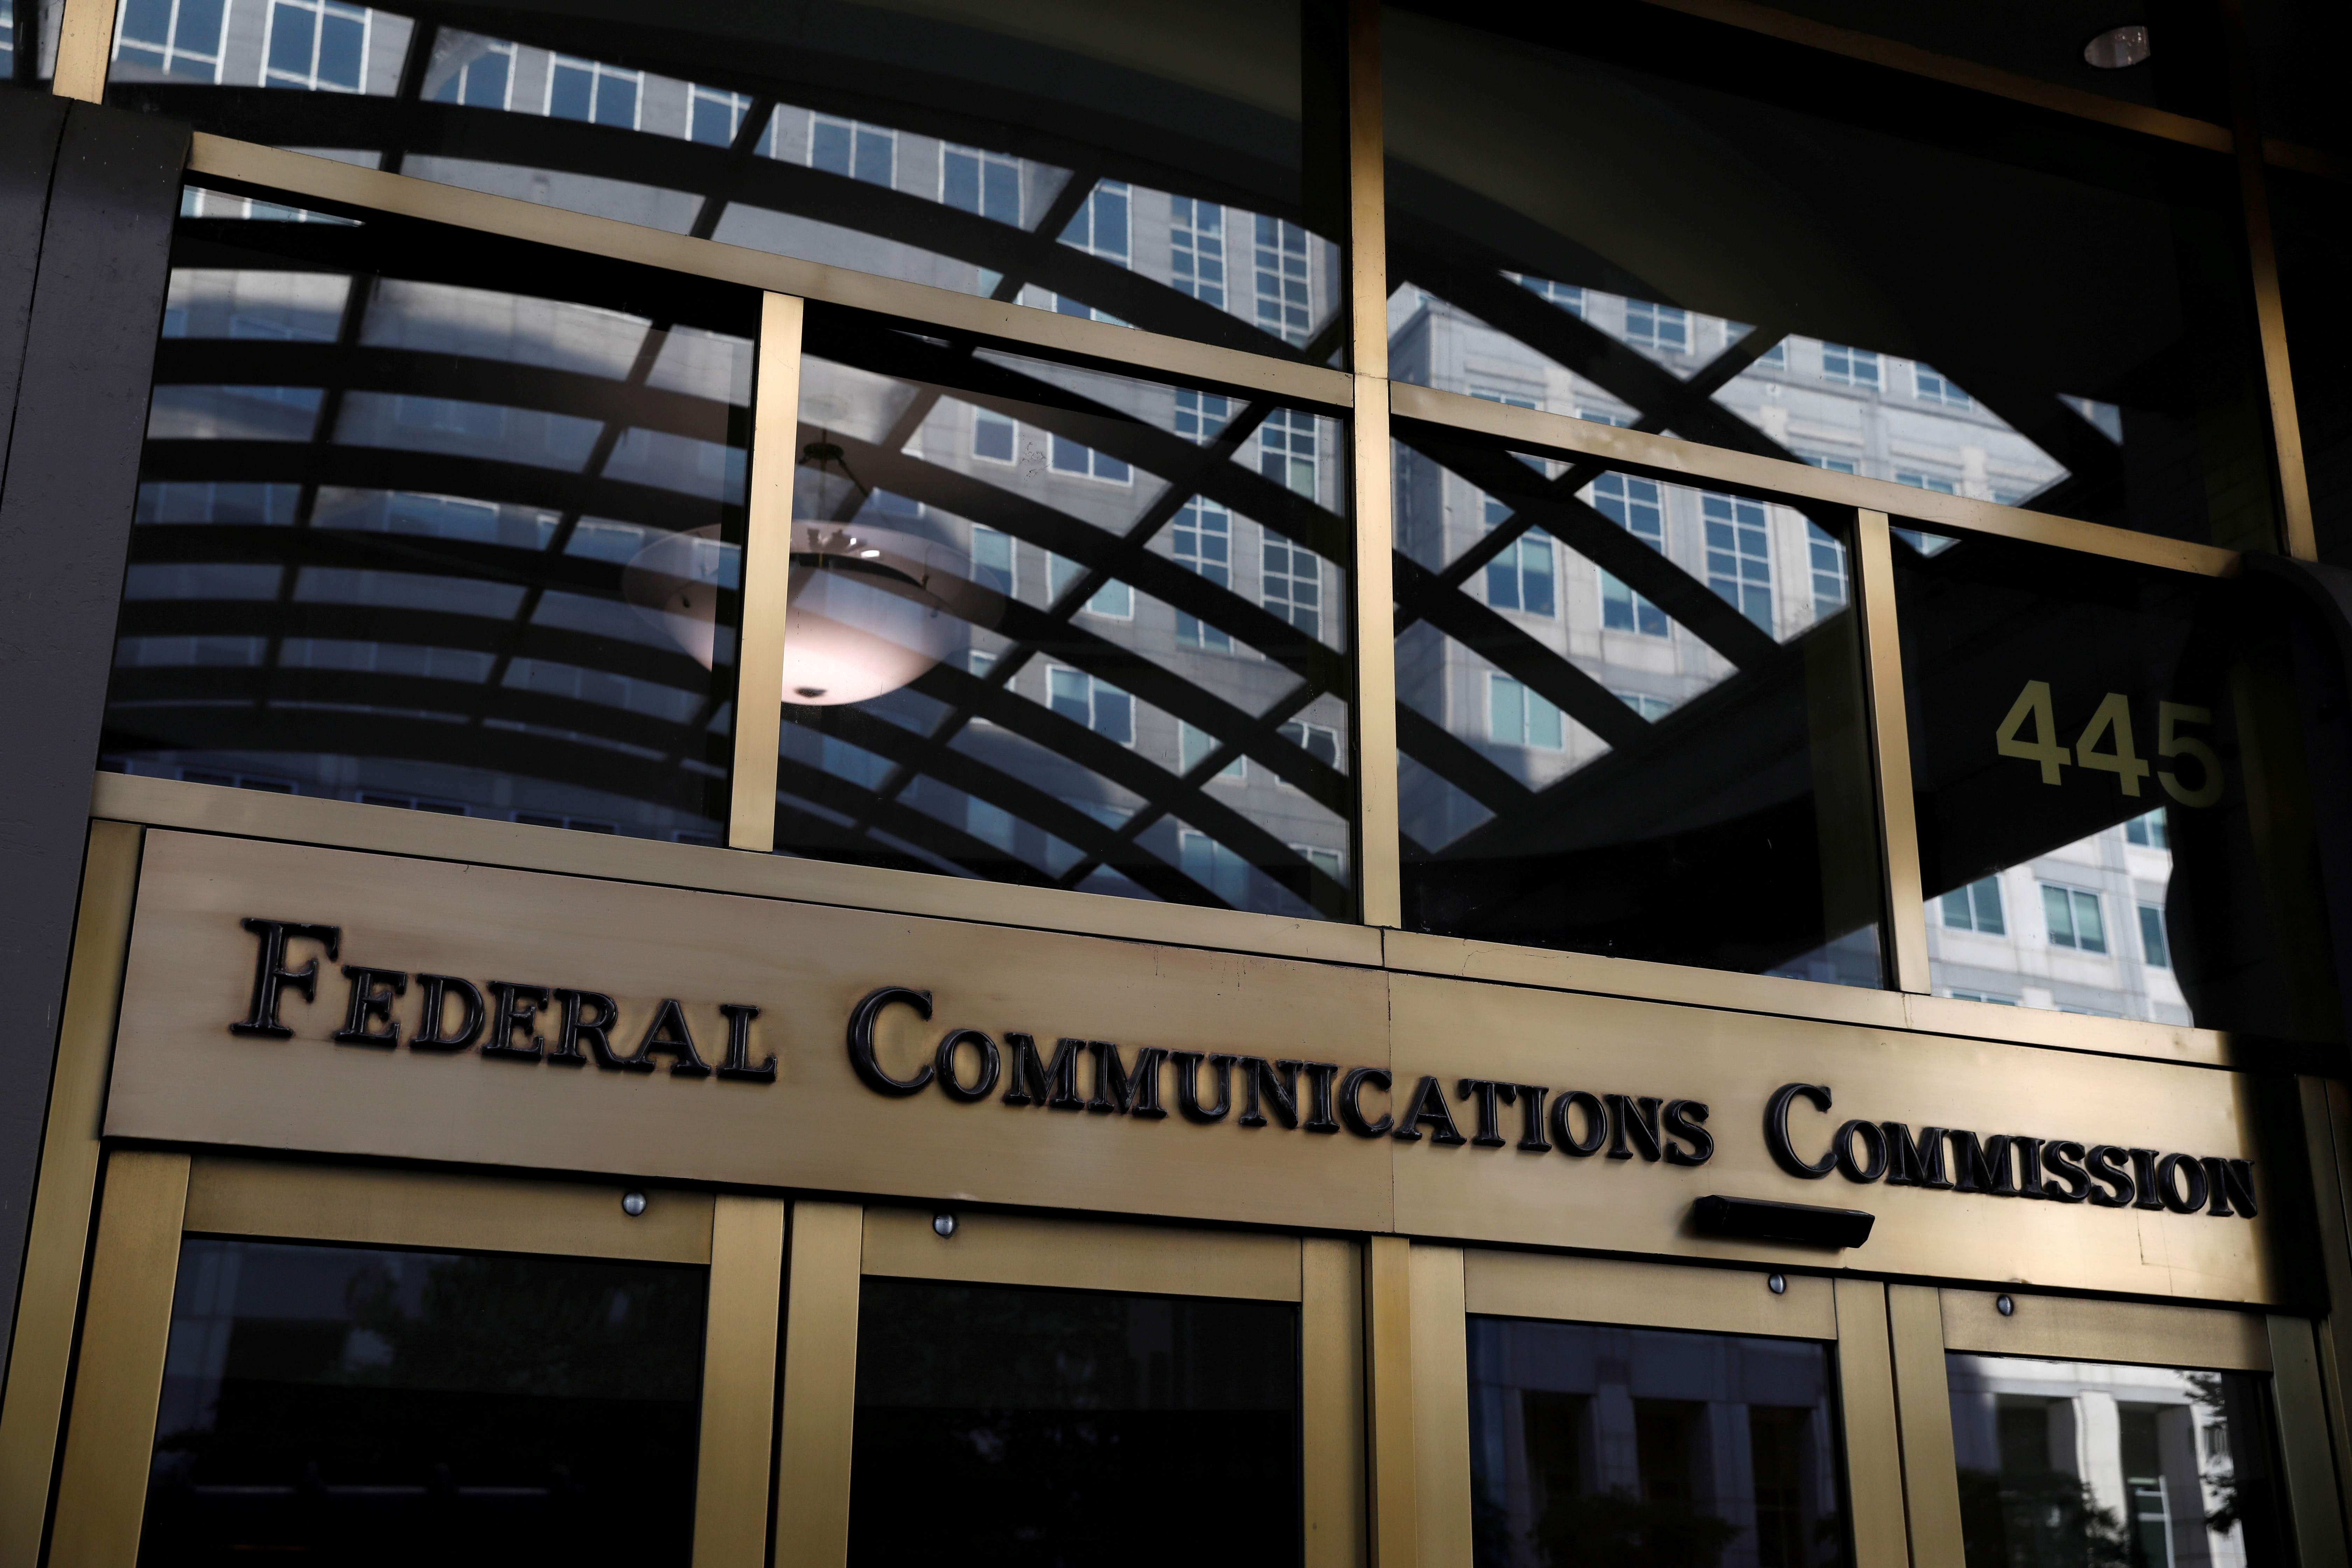 Signage is seen at the headquarters of the Federal Communications Commission in Washington, D.C., U.S., August 29, 2020. REUTERS/Andrew Kelly/File Photo